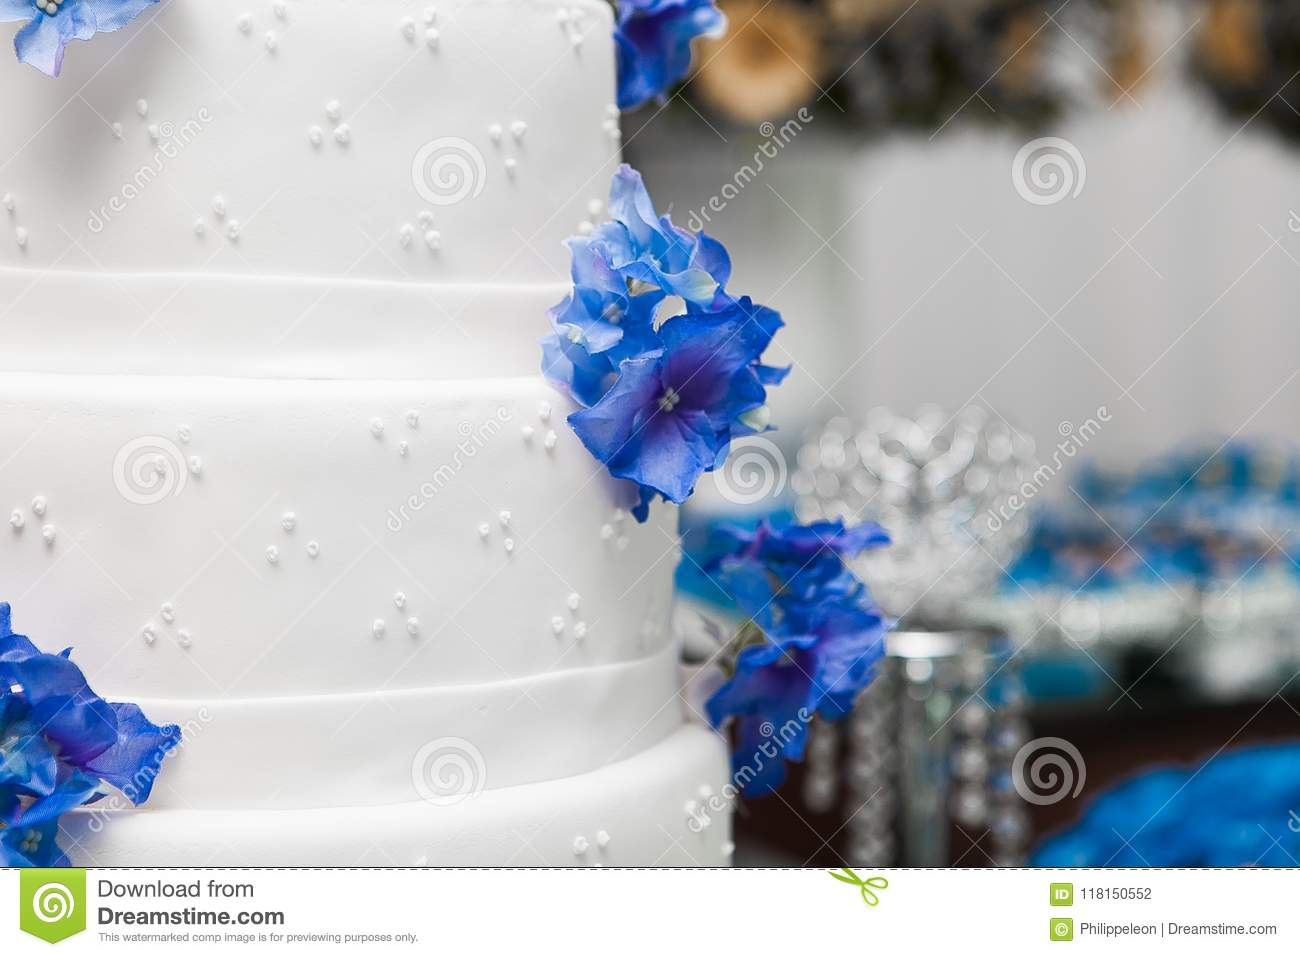 White wedding cake with blue flowers stock photo image of download white wedding cake with blue flowers stock photo image of decoration confectioned izmirmasajfo